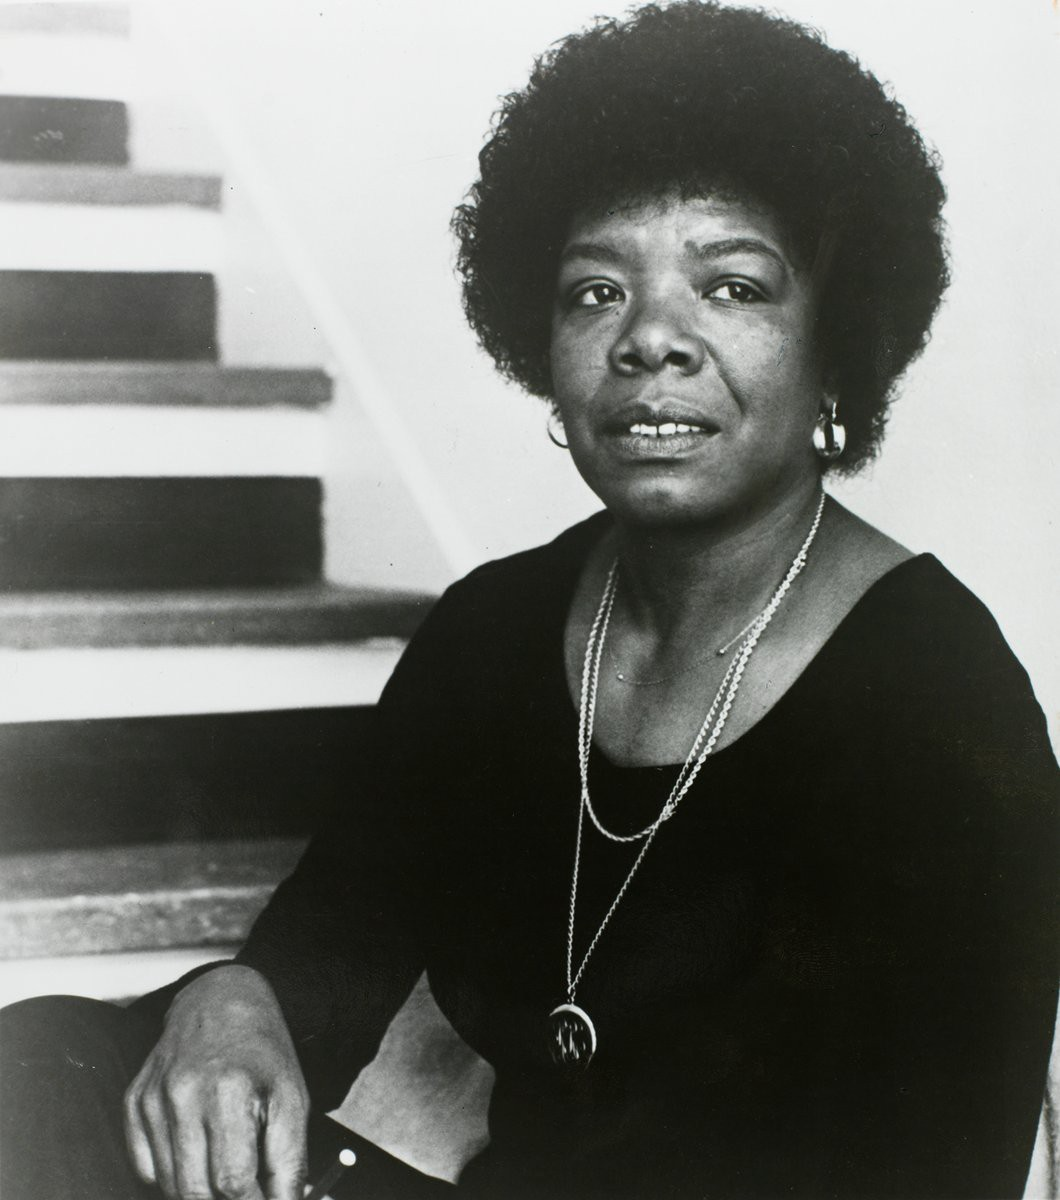 Title: Maya Angelou | Photographer: Susan Mullally Well | Source: Burns Library | License: CC BY NC-ND 2.0